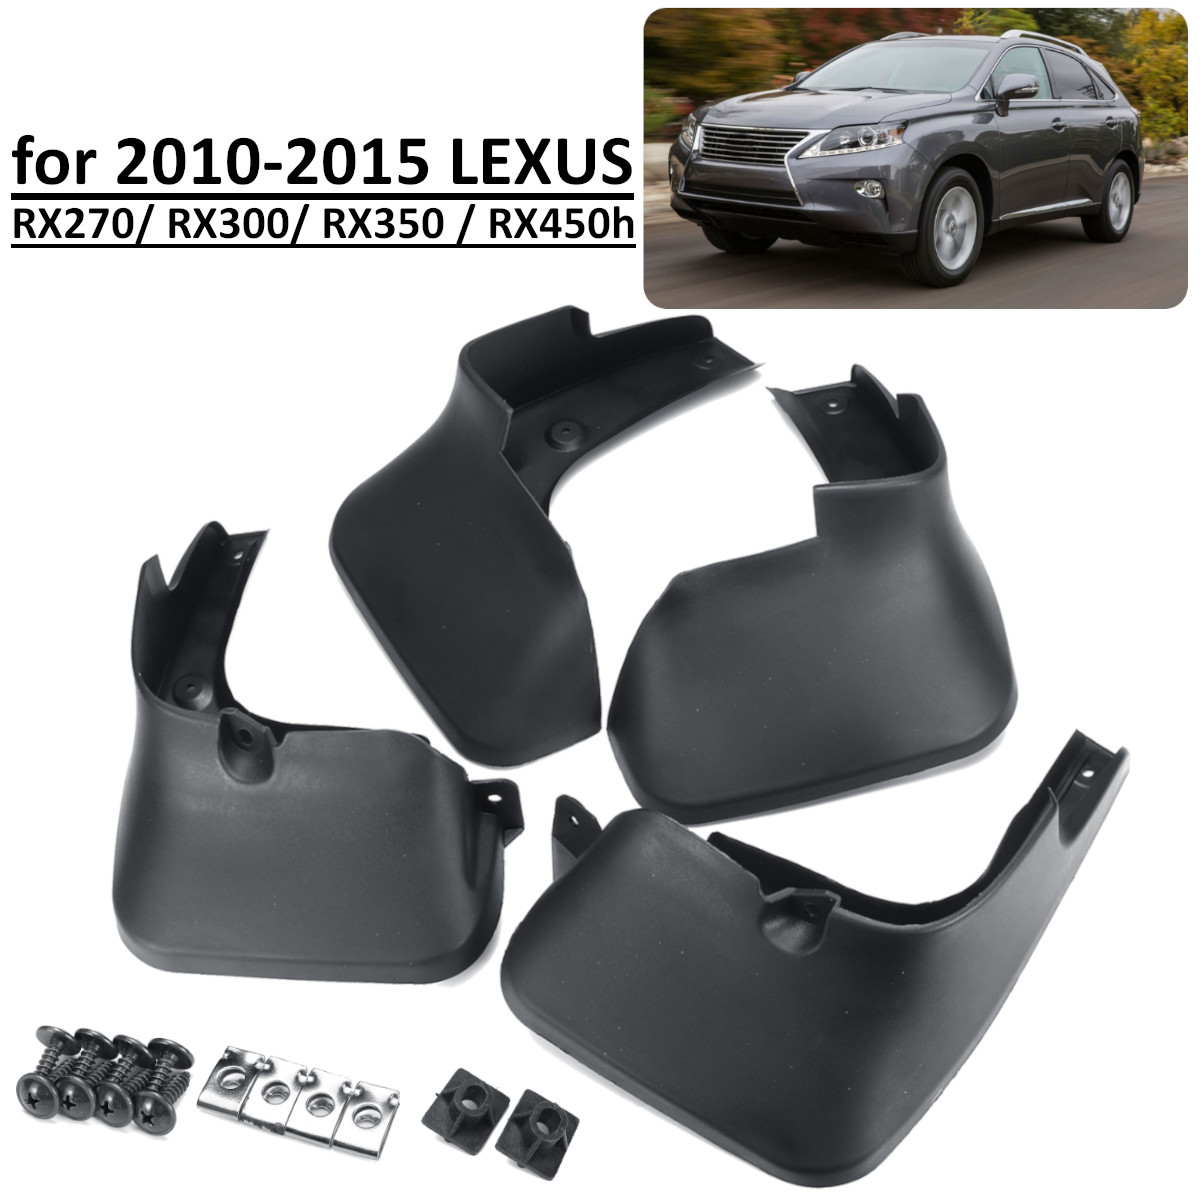 Car Mud Flaps For LEXUS RX RX270 RX300 RX350 RX450H 2010 2015 Splash Guards Mudflaps Mudguards Accessories-in Mudguards from Automobiles & Motorcycles